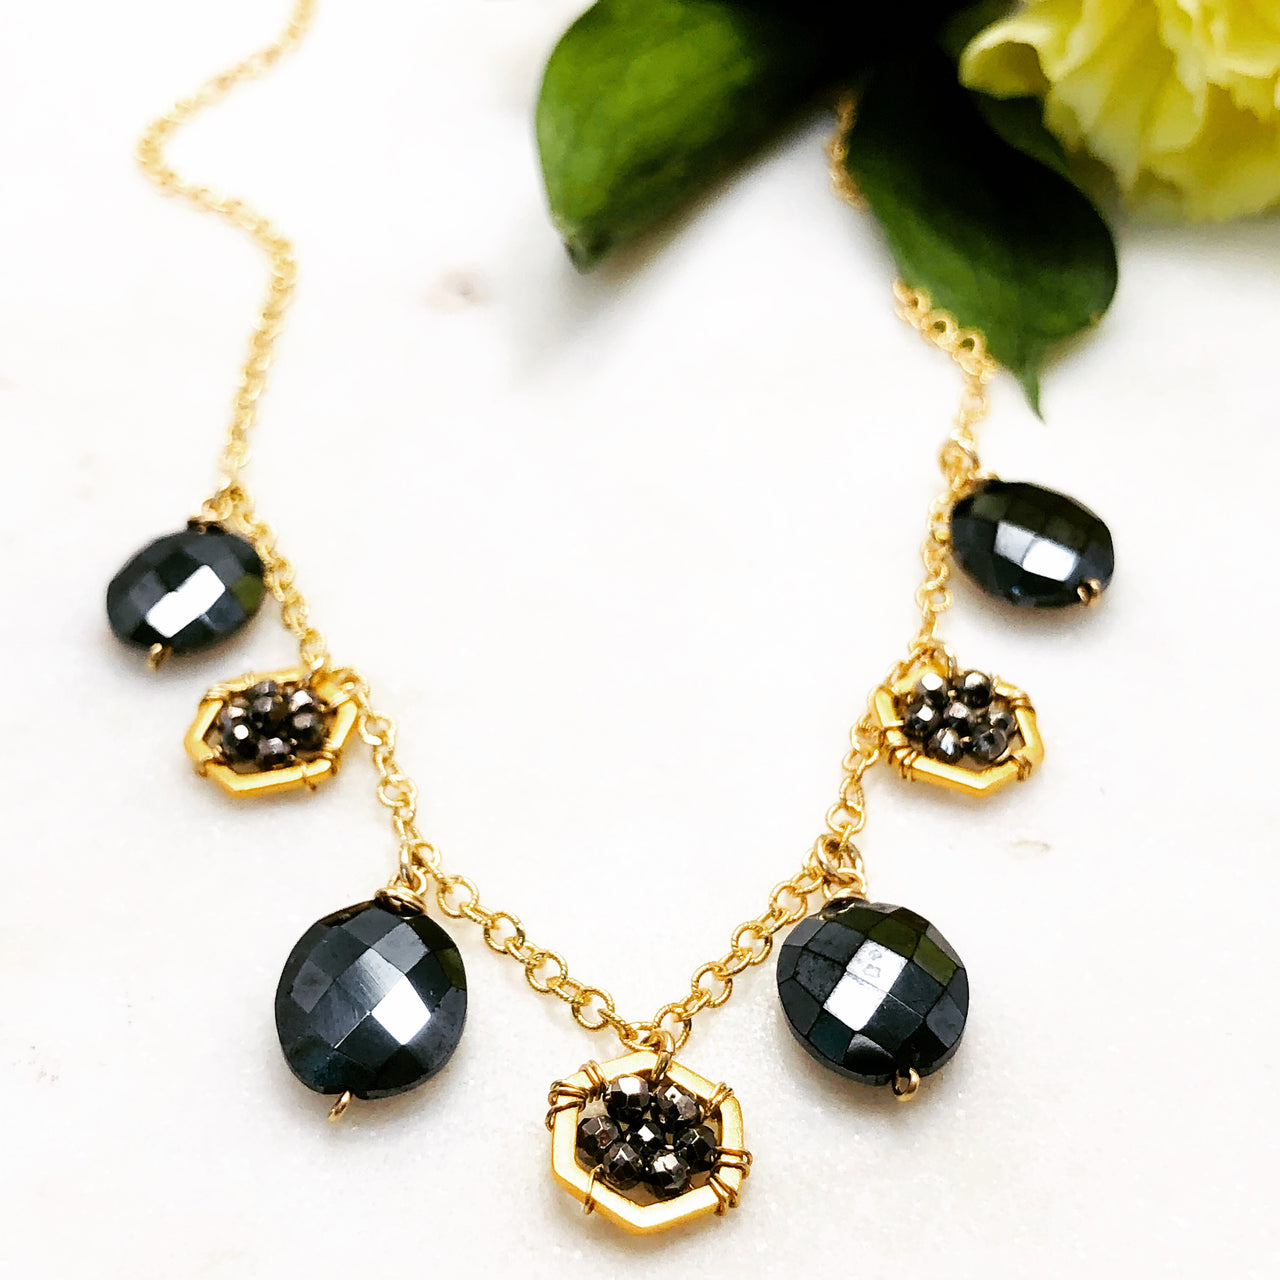 Gold Filled Pyrite and Onyx Necklace.